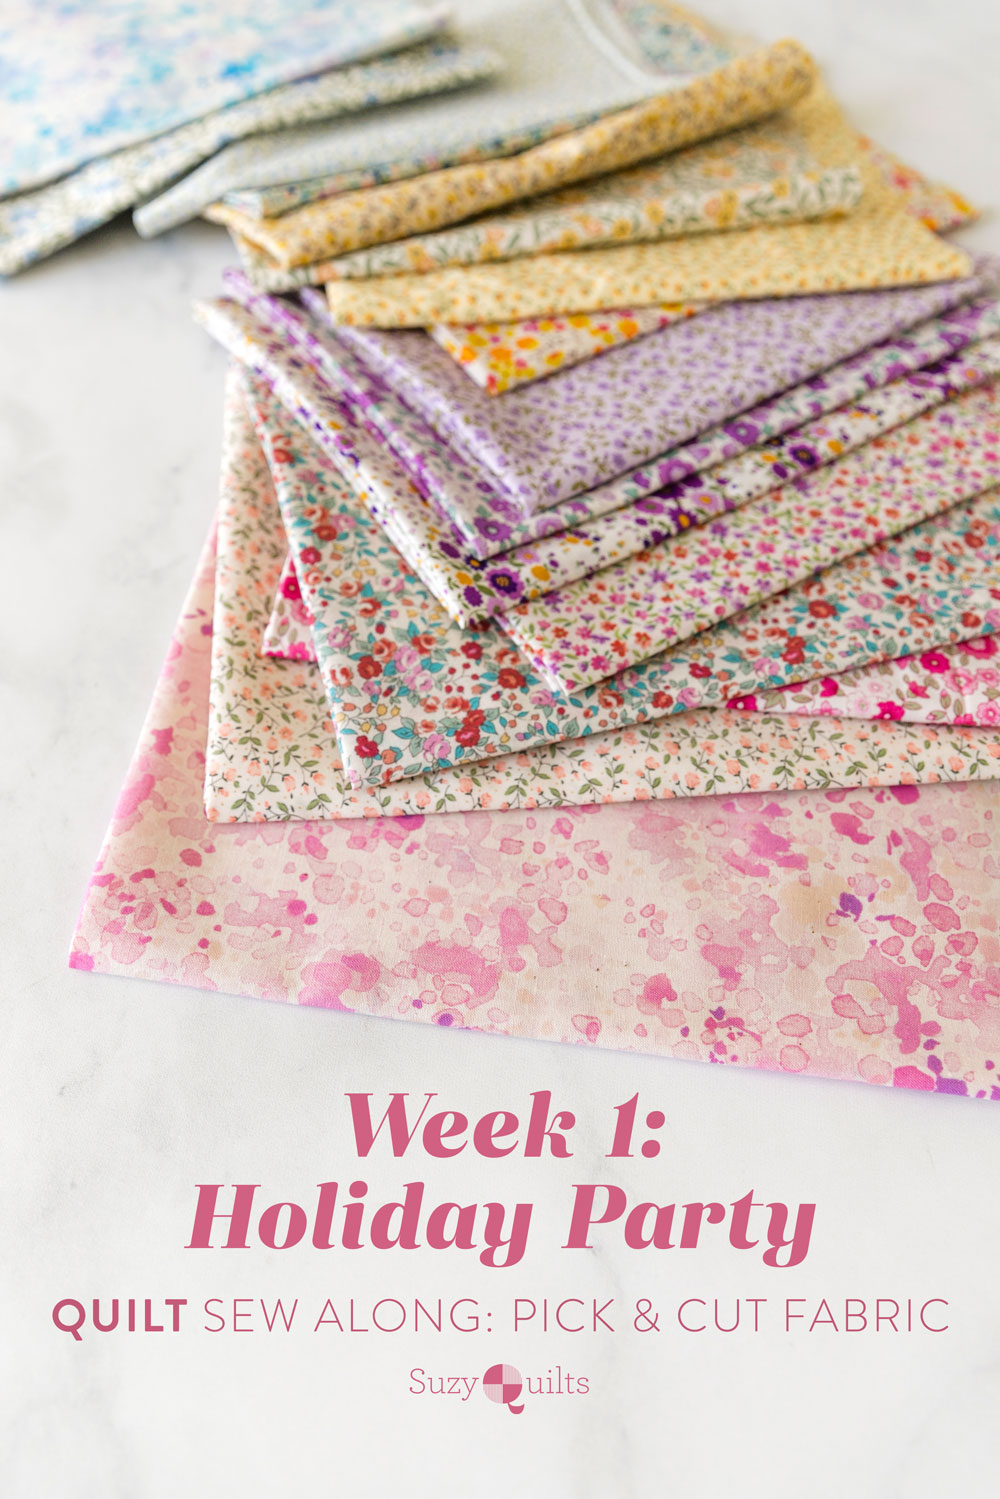 The Holiday Party quilt along includes lots of extra instruction and tips in sewing this fat quarter friendly modern throw quilt. suzyquilts.com